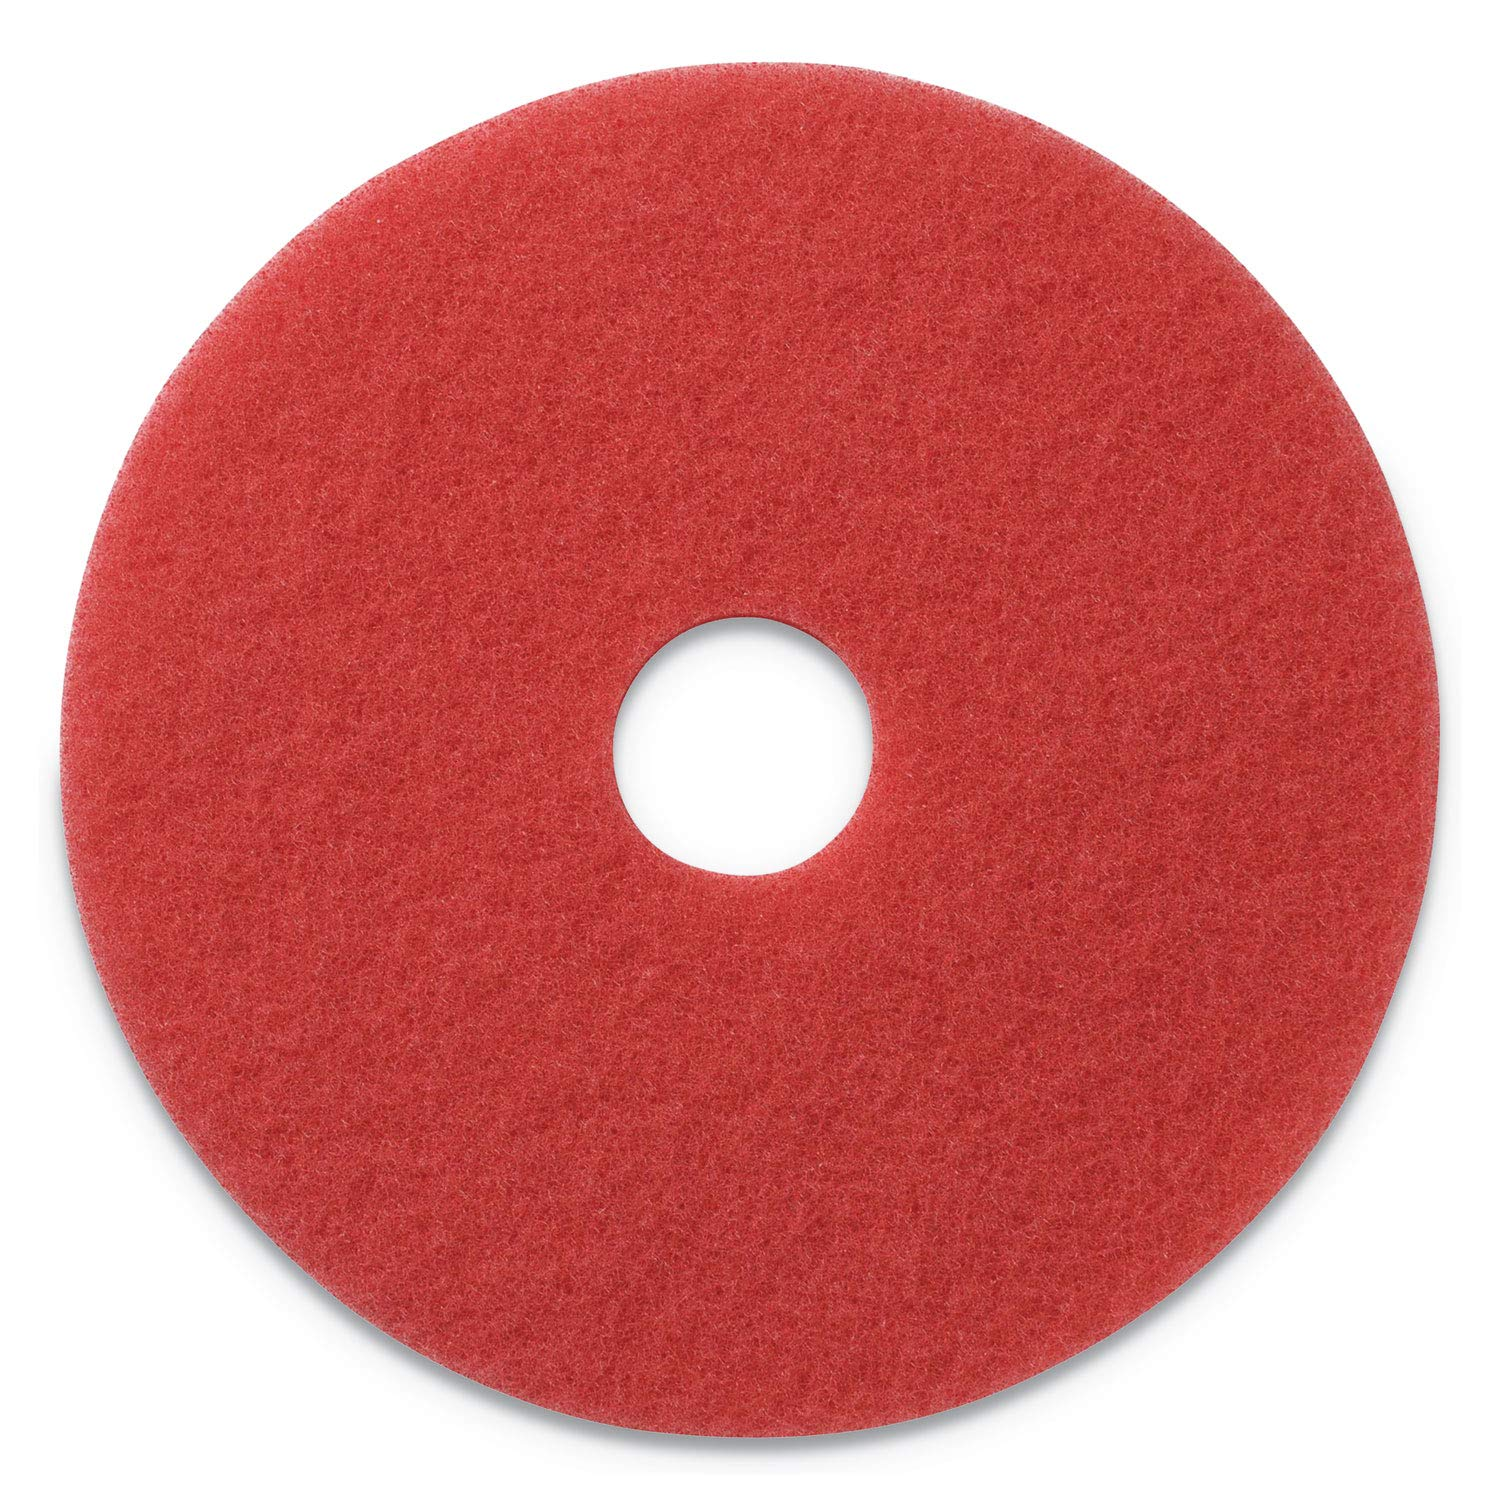 Glit/Microtron 404420 Daily Cleaning and Buffing Pad, 20'', Red (Pack of 5)